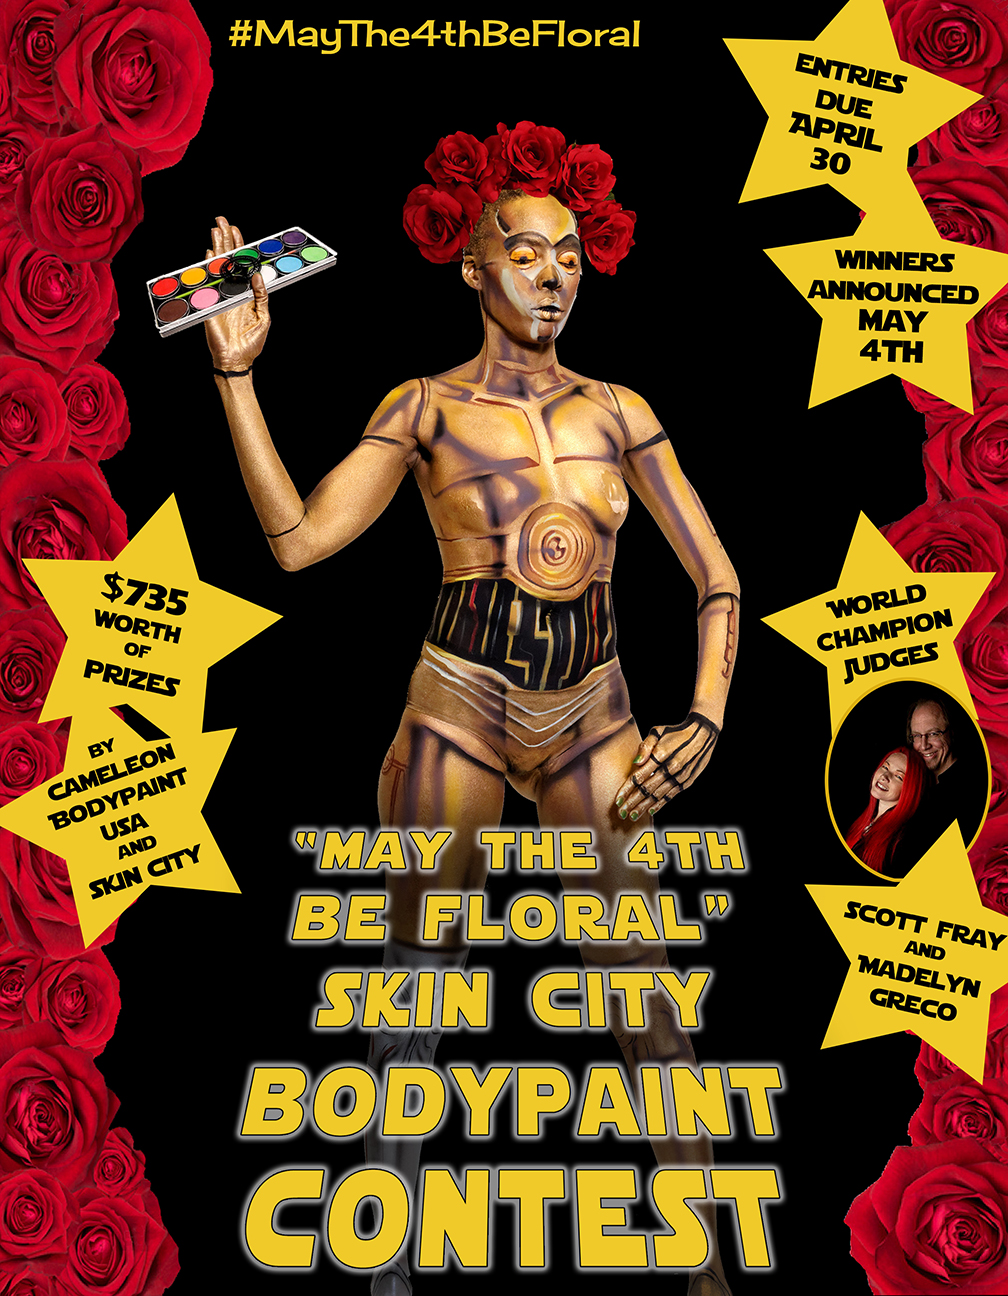 May The 4th Be Floral Poster